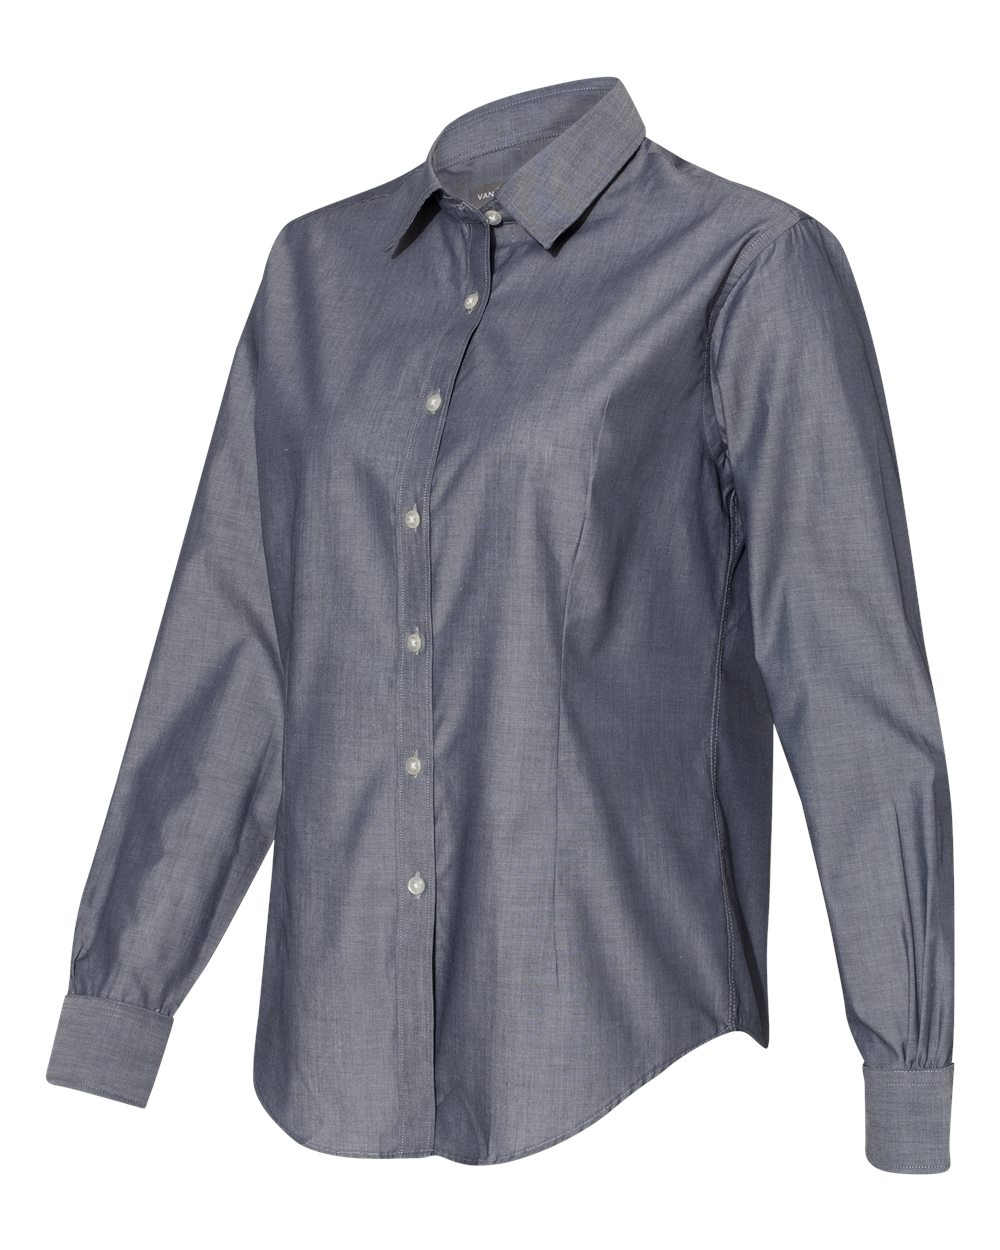 Van Heusen 13V0466 - Women's Chambray Spread Collar ...